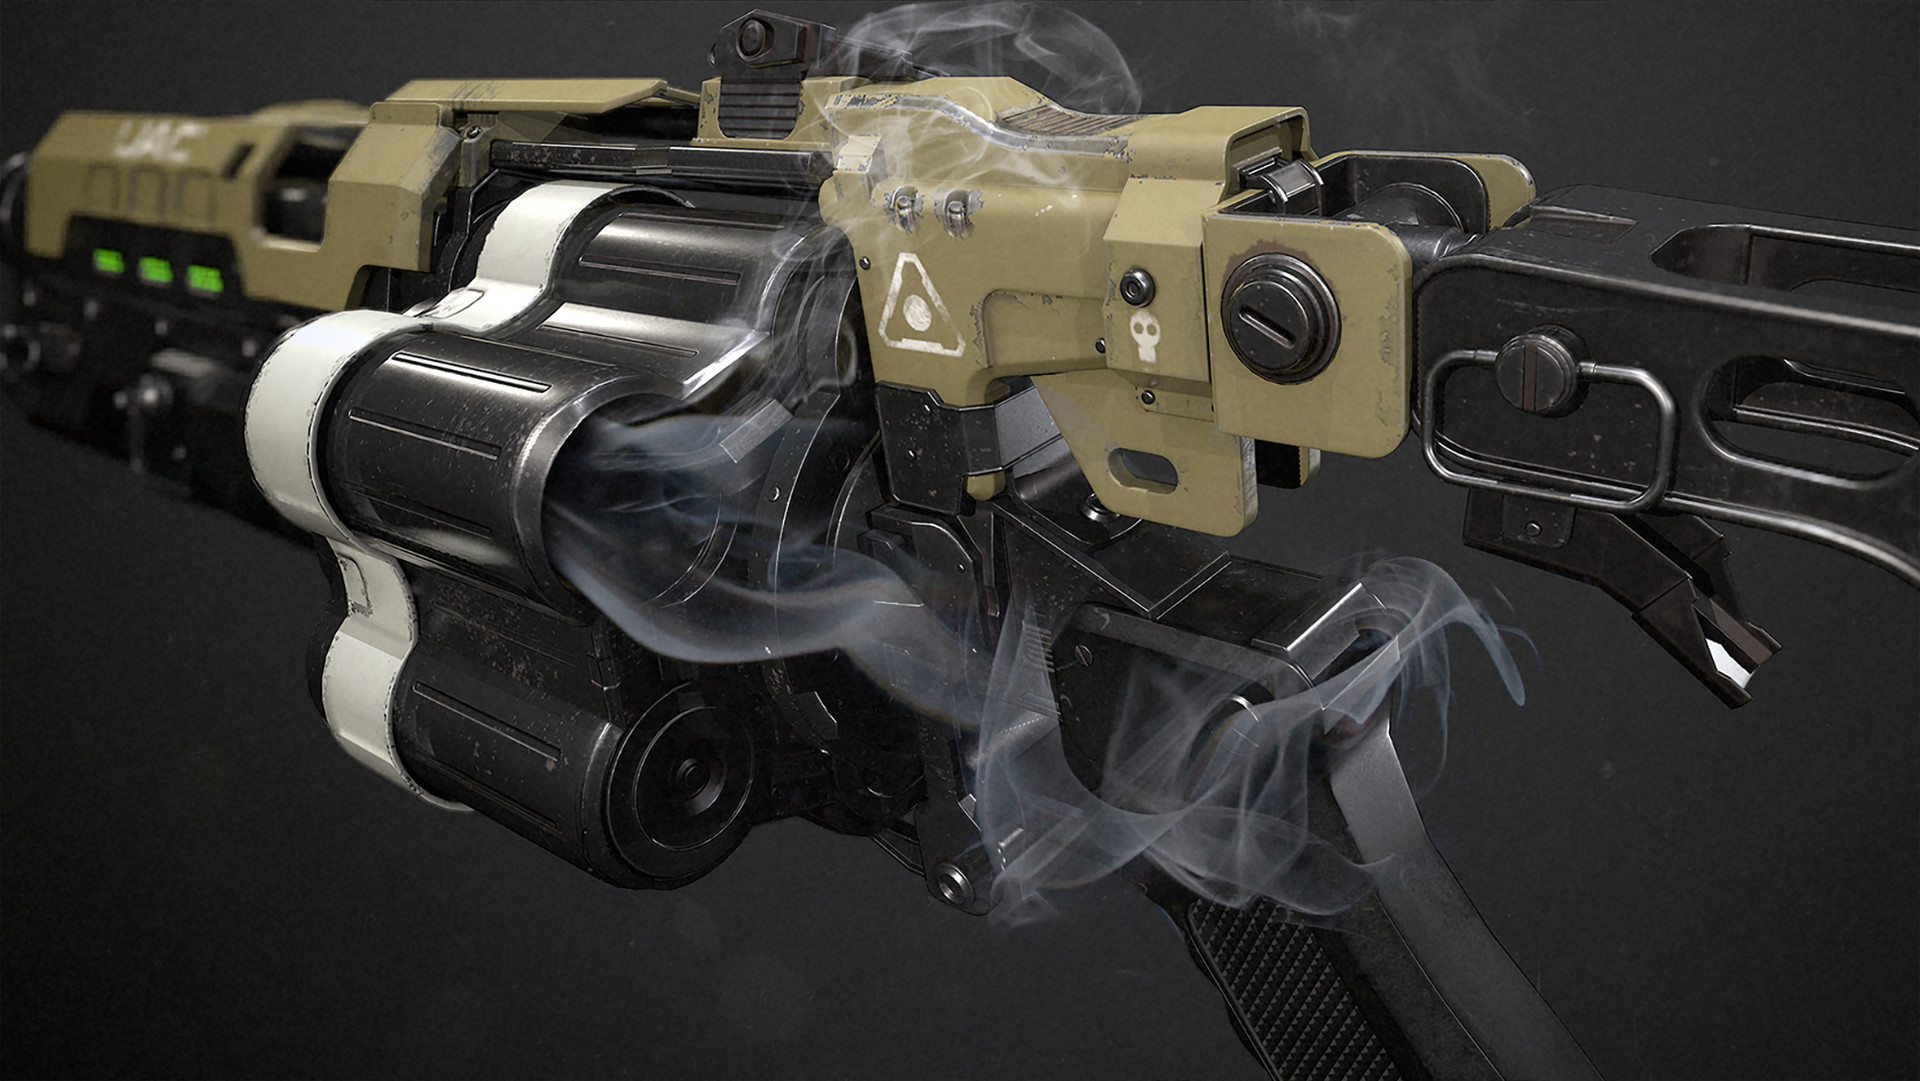 Designing Guns: Model, Texture and Light